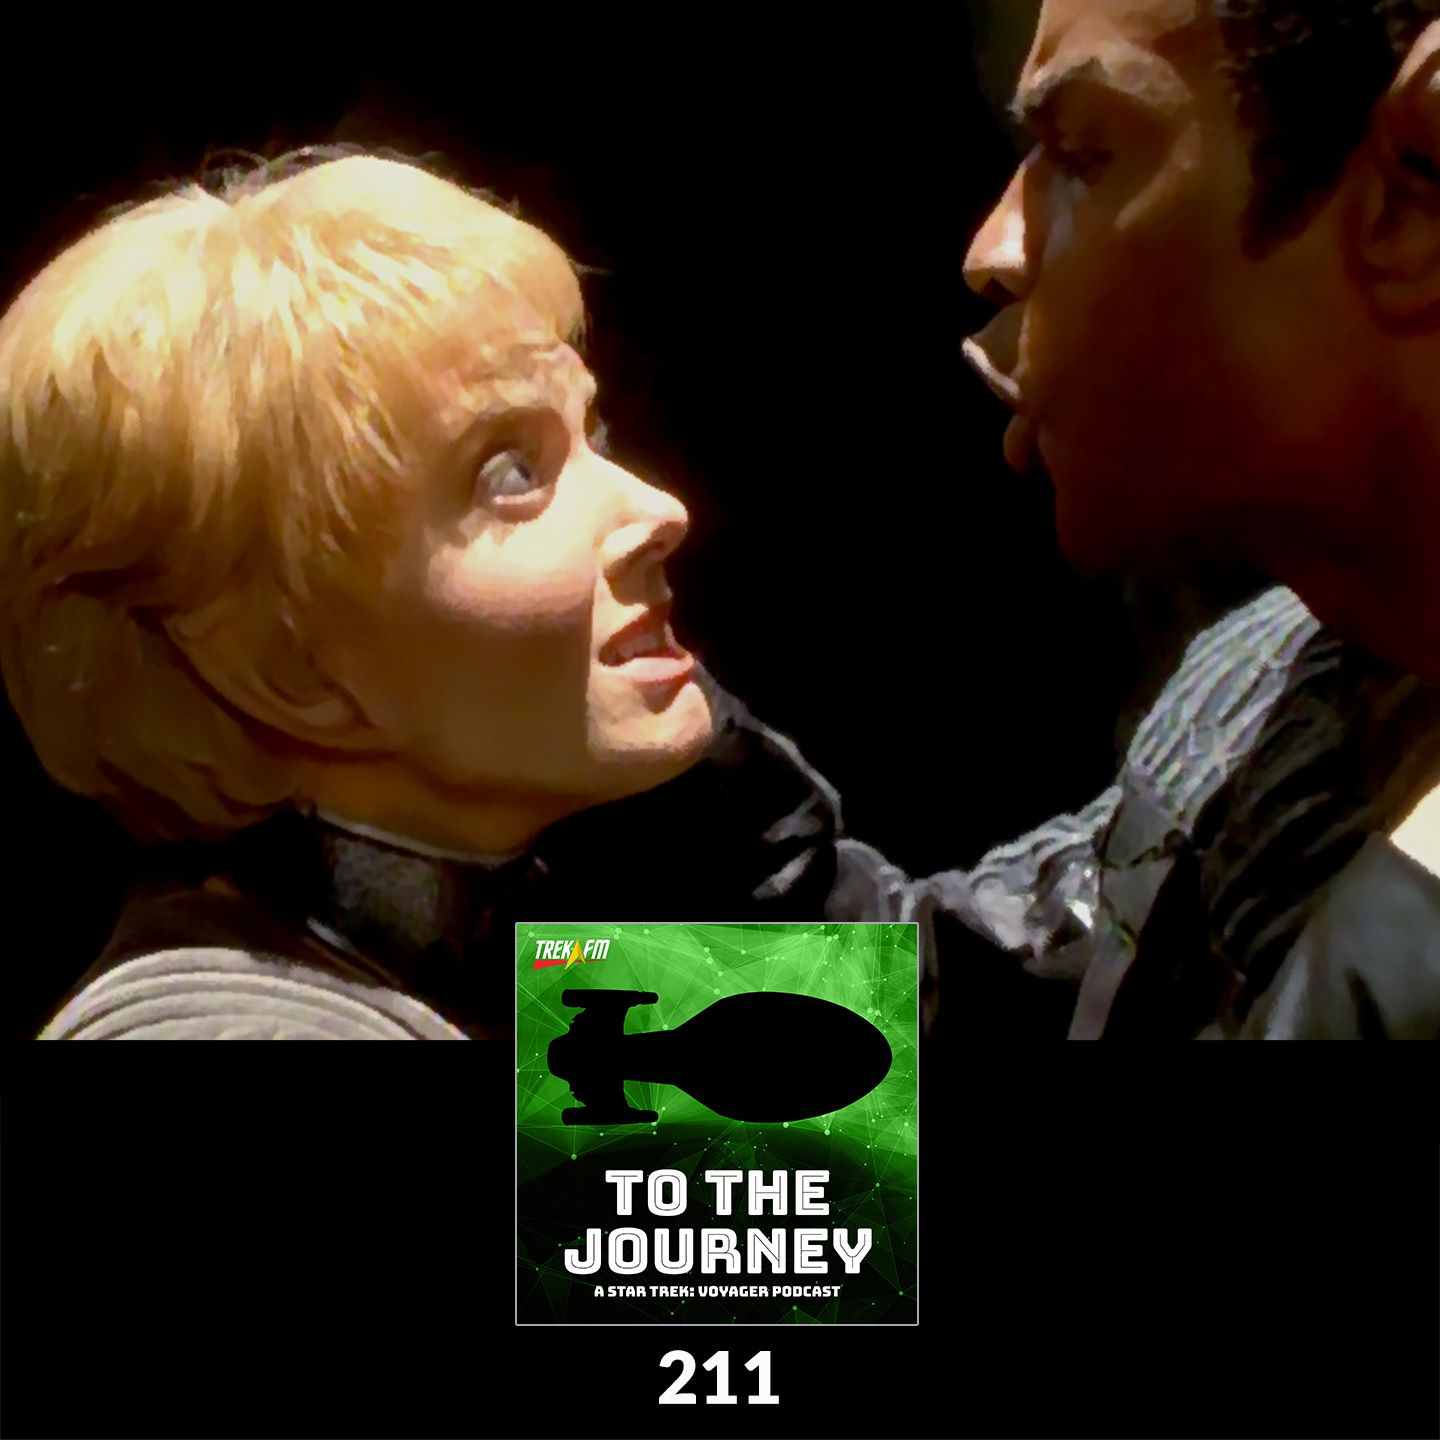 To The Journey 211: It's a Maelstrom - Favorite Kes/Tuvok Moments.